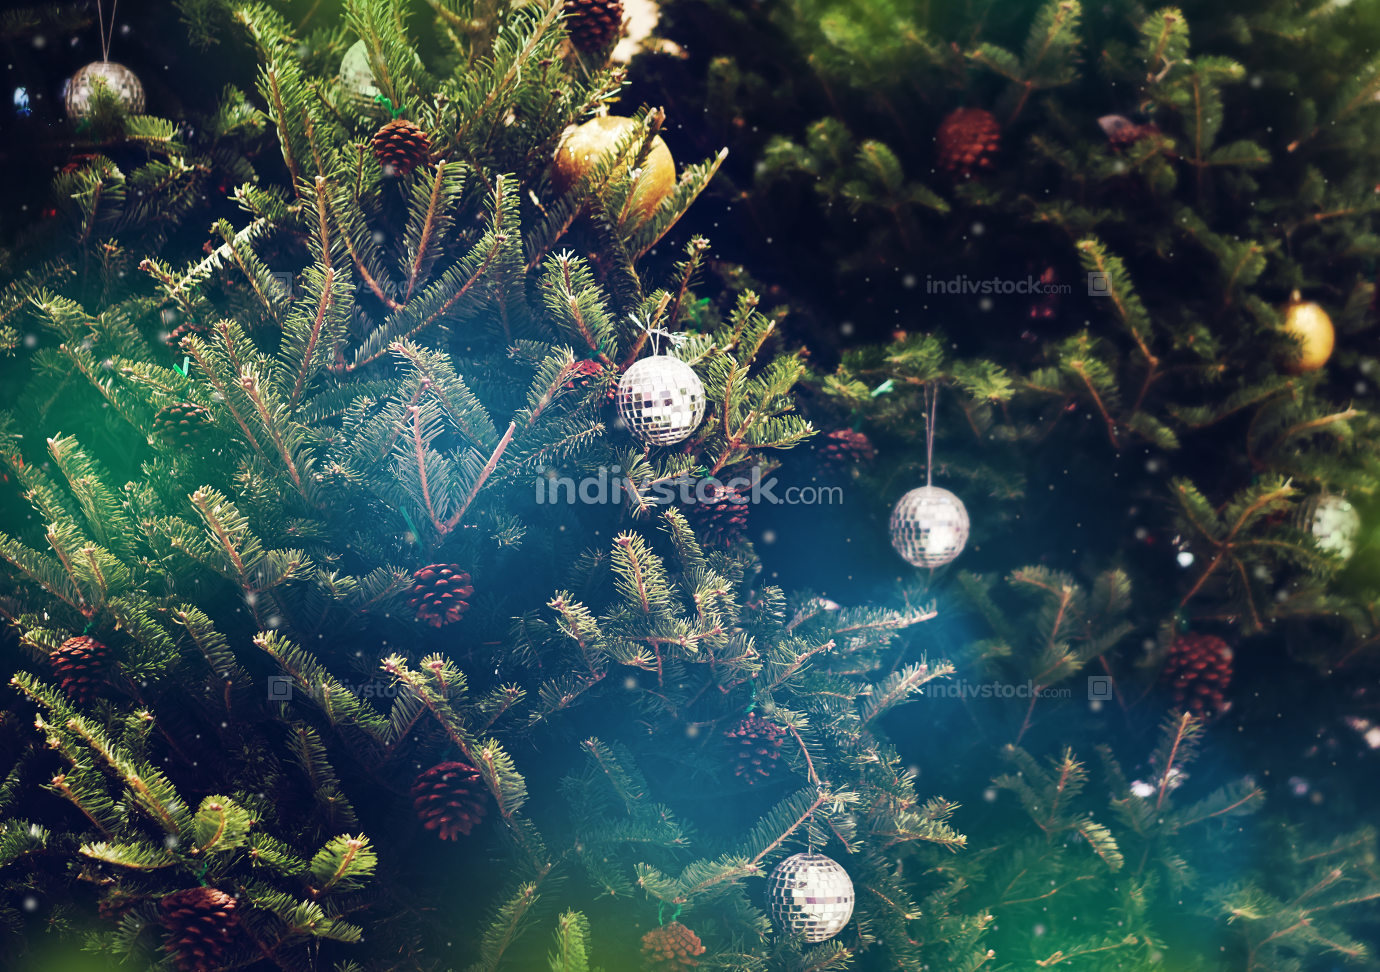 free download: green christmas fir tree decoration background and 3d rendering